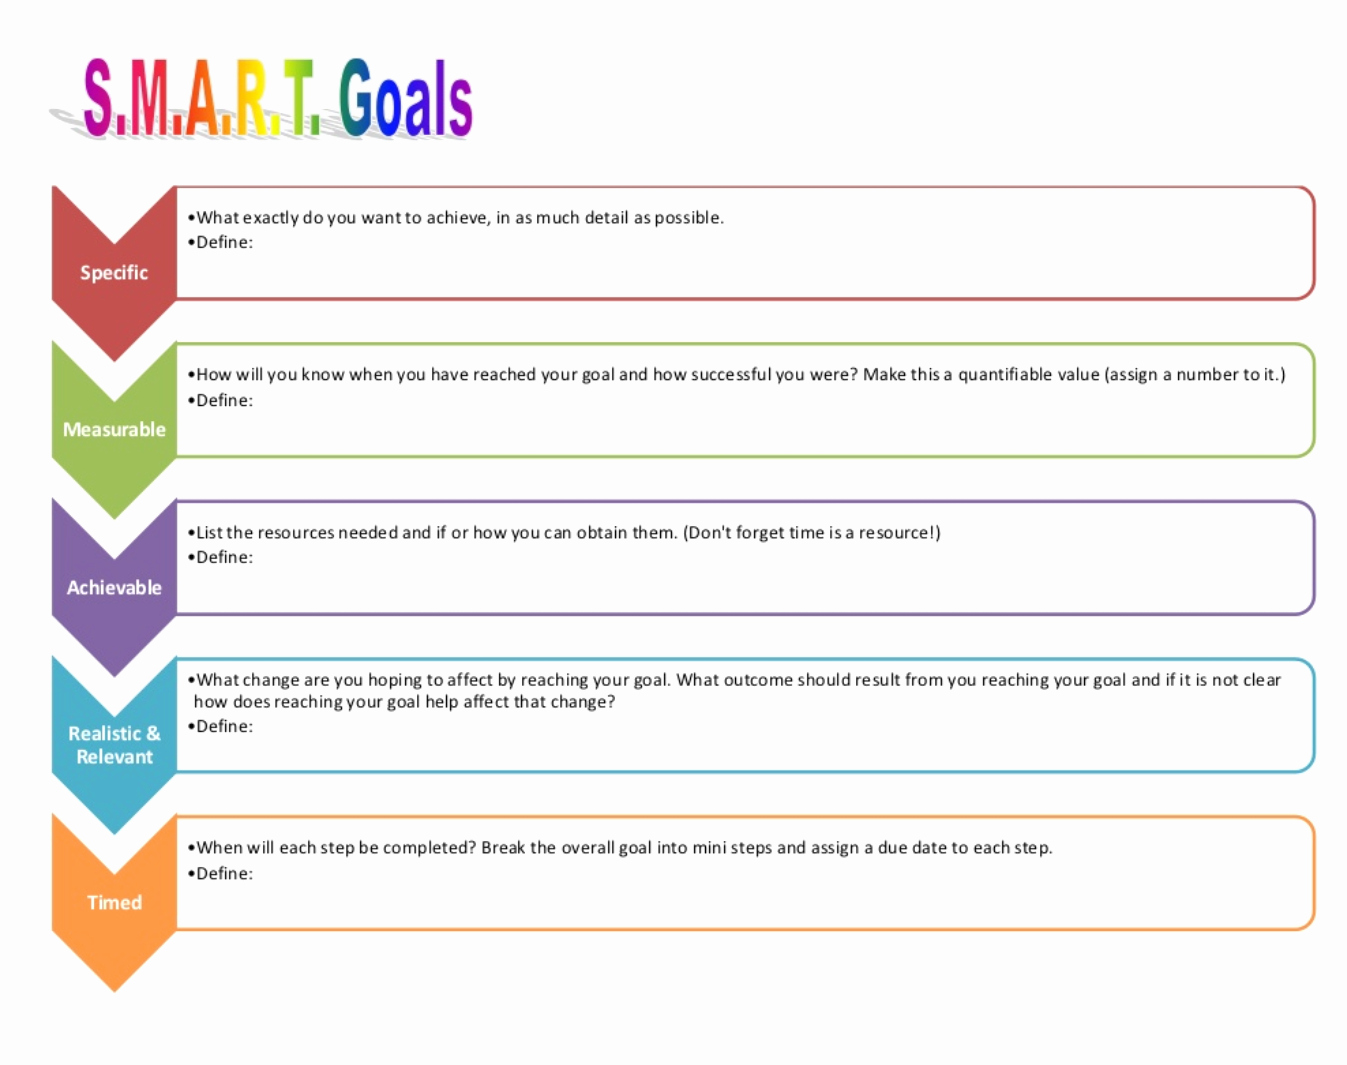 Smart Goals Template Free Download Luxury Smart Goals Obgyn Bakersfield Ca